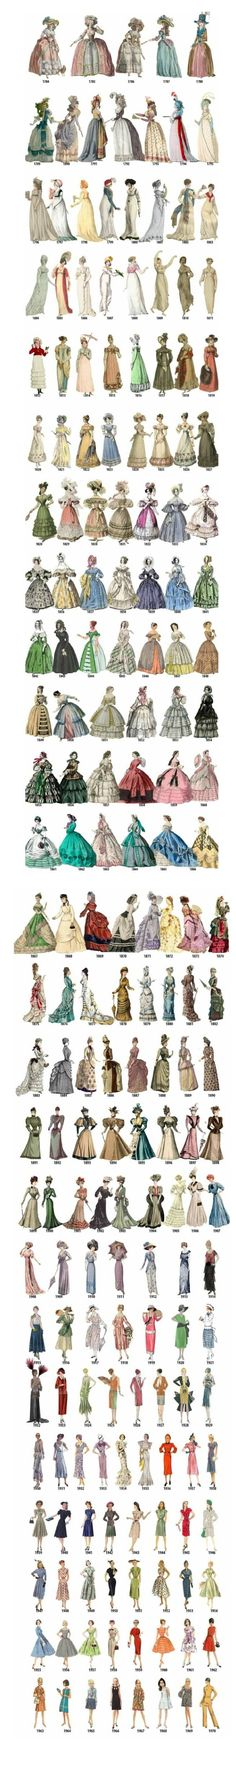 The evolution of women's fashion over nearly 200 years